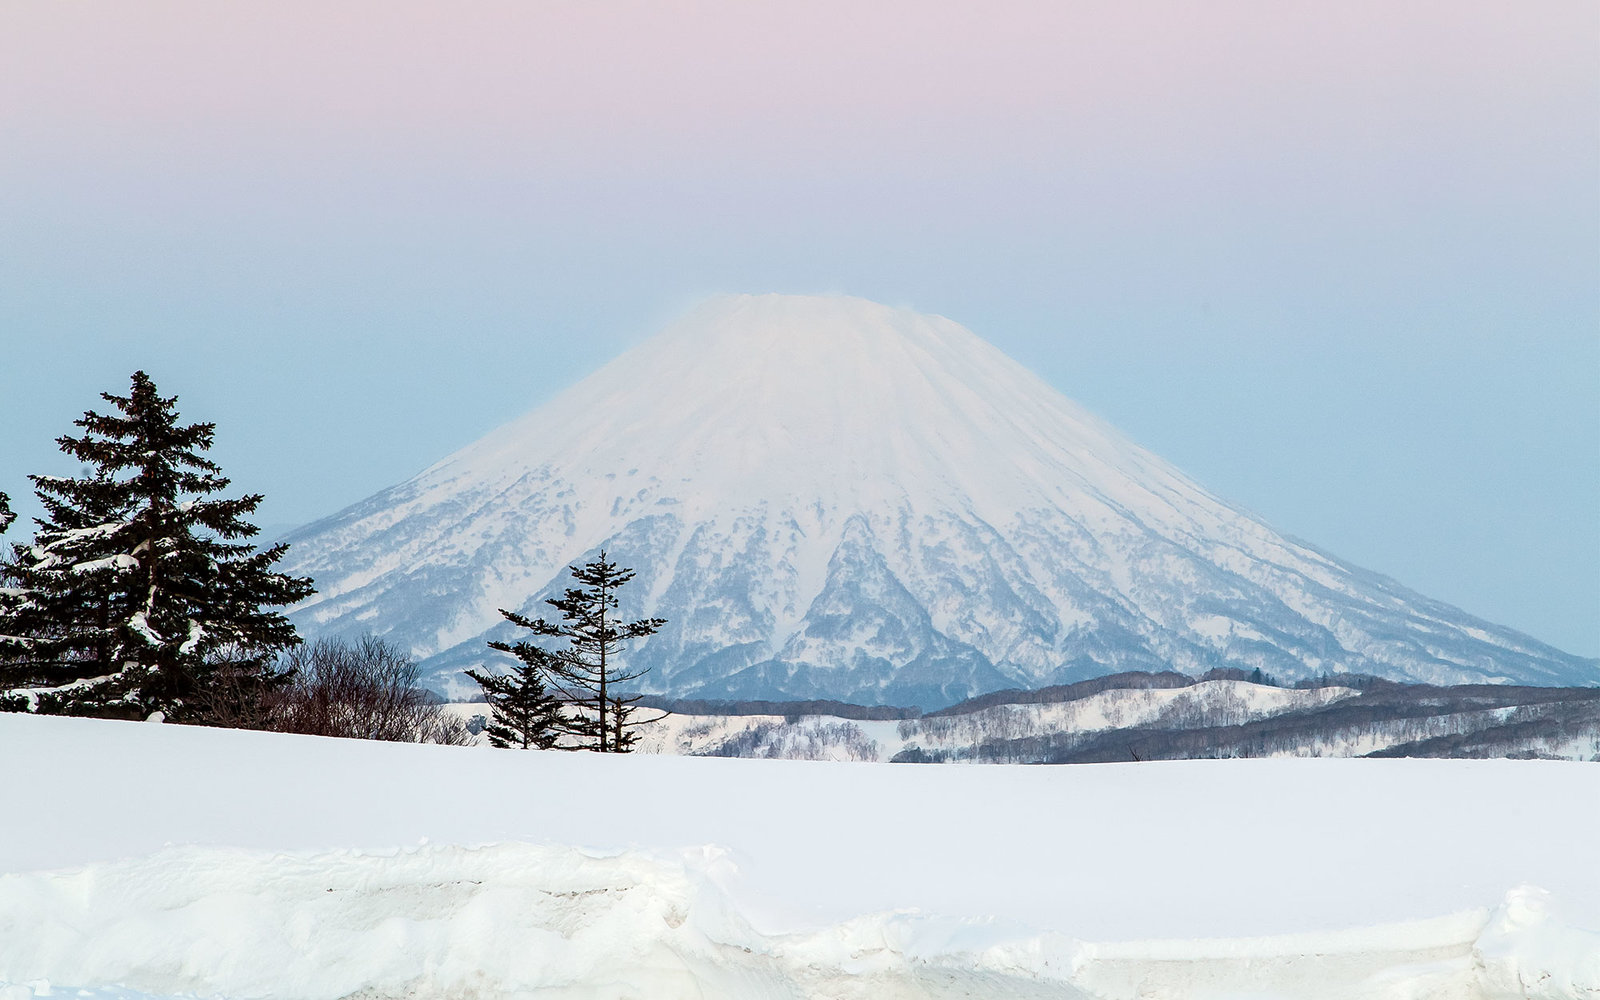 Winter travel destinations in Japan - The Japan Times